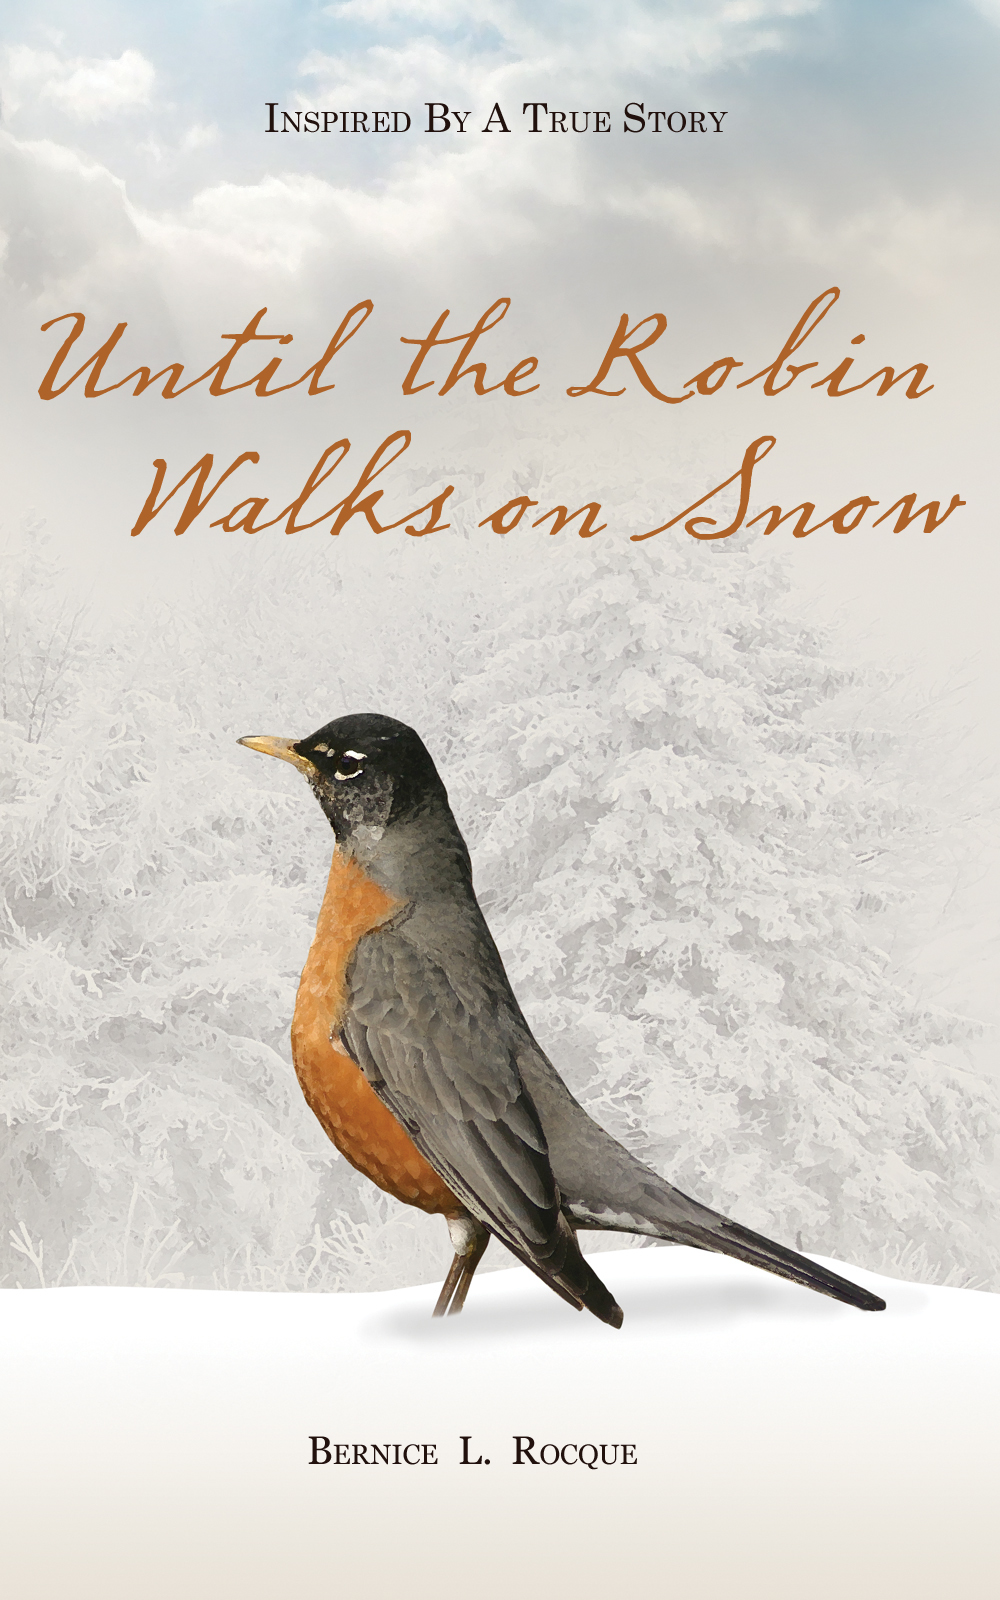 9780985682200 Until the Robin Walks on Snow COVER 1000x1600 - sized 30 percent copy